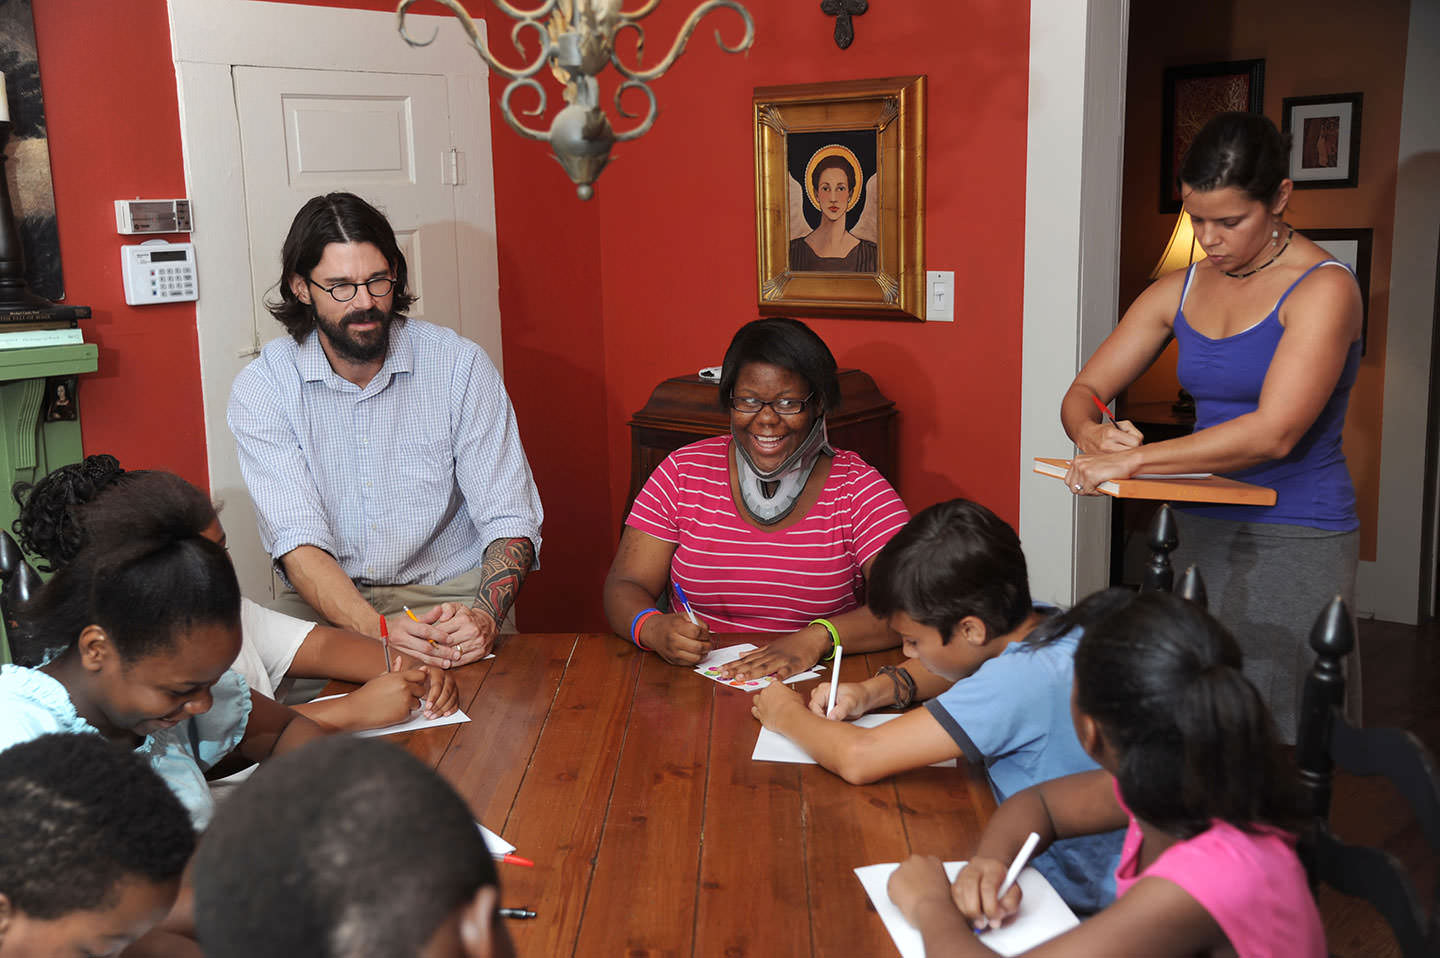 Adam Pierce, left, and Amy Pierce, far right, work with the kids from West Circle at the Brown House.